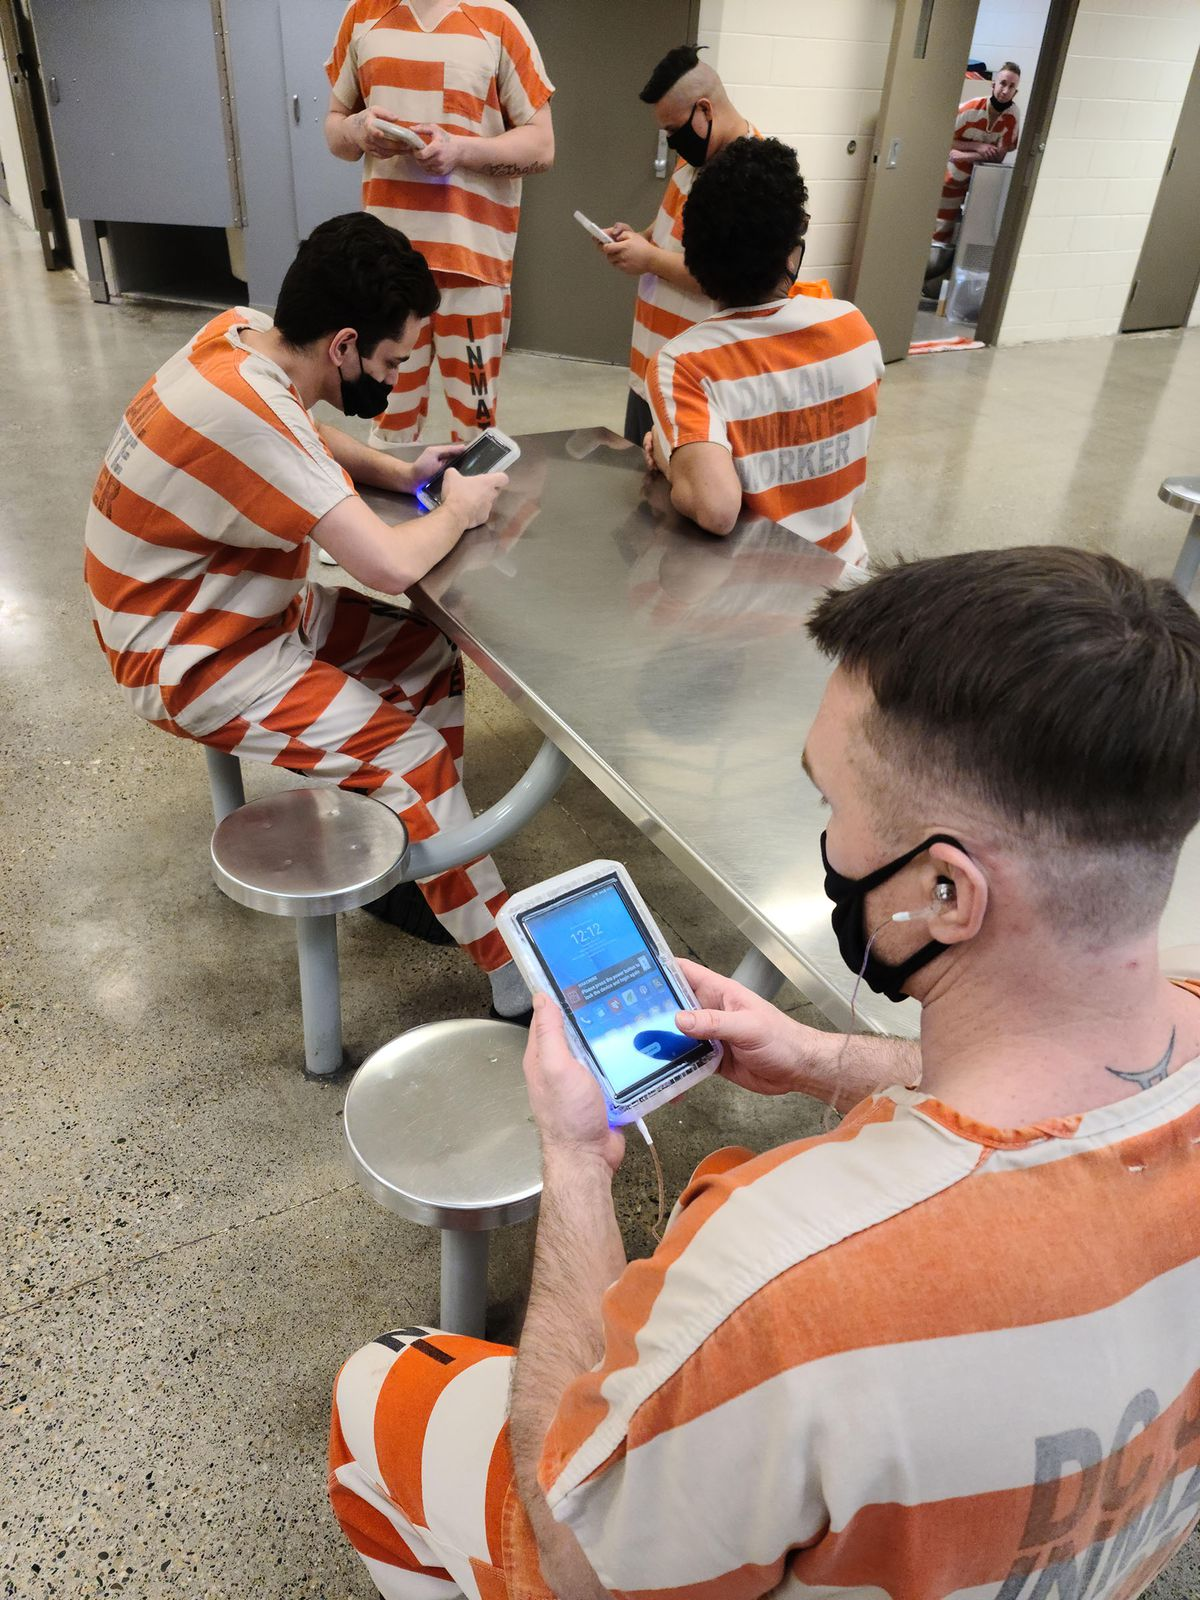 Inmates at the Davis County Jail are now issued tablets when they are booked into the housing units that are not maximum security. The tablets can be used for education, entertainment and to connect with family members. Jail administrators say the introduction of the tablets has made the inmate population much calmer and compliant.